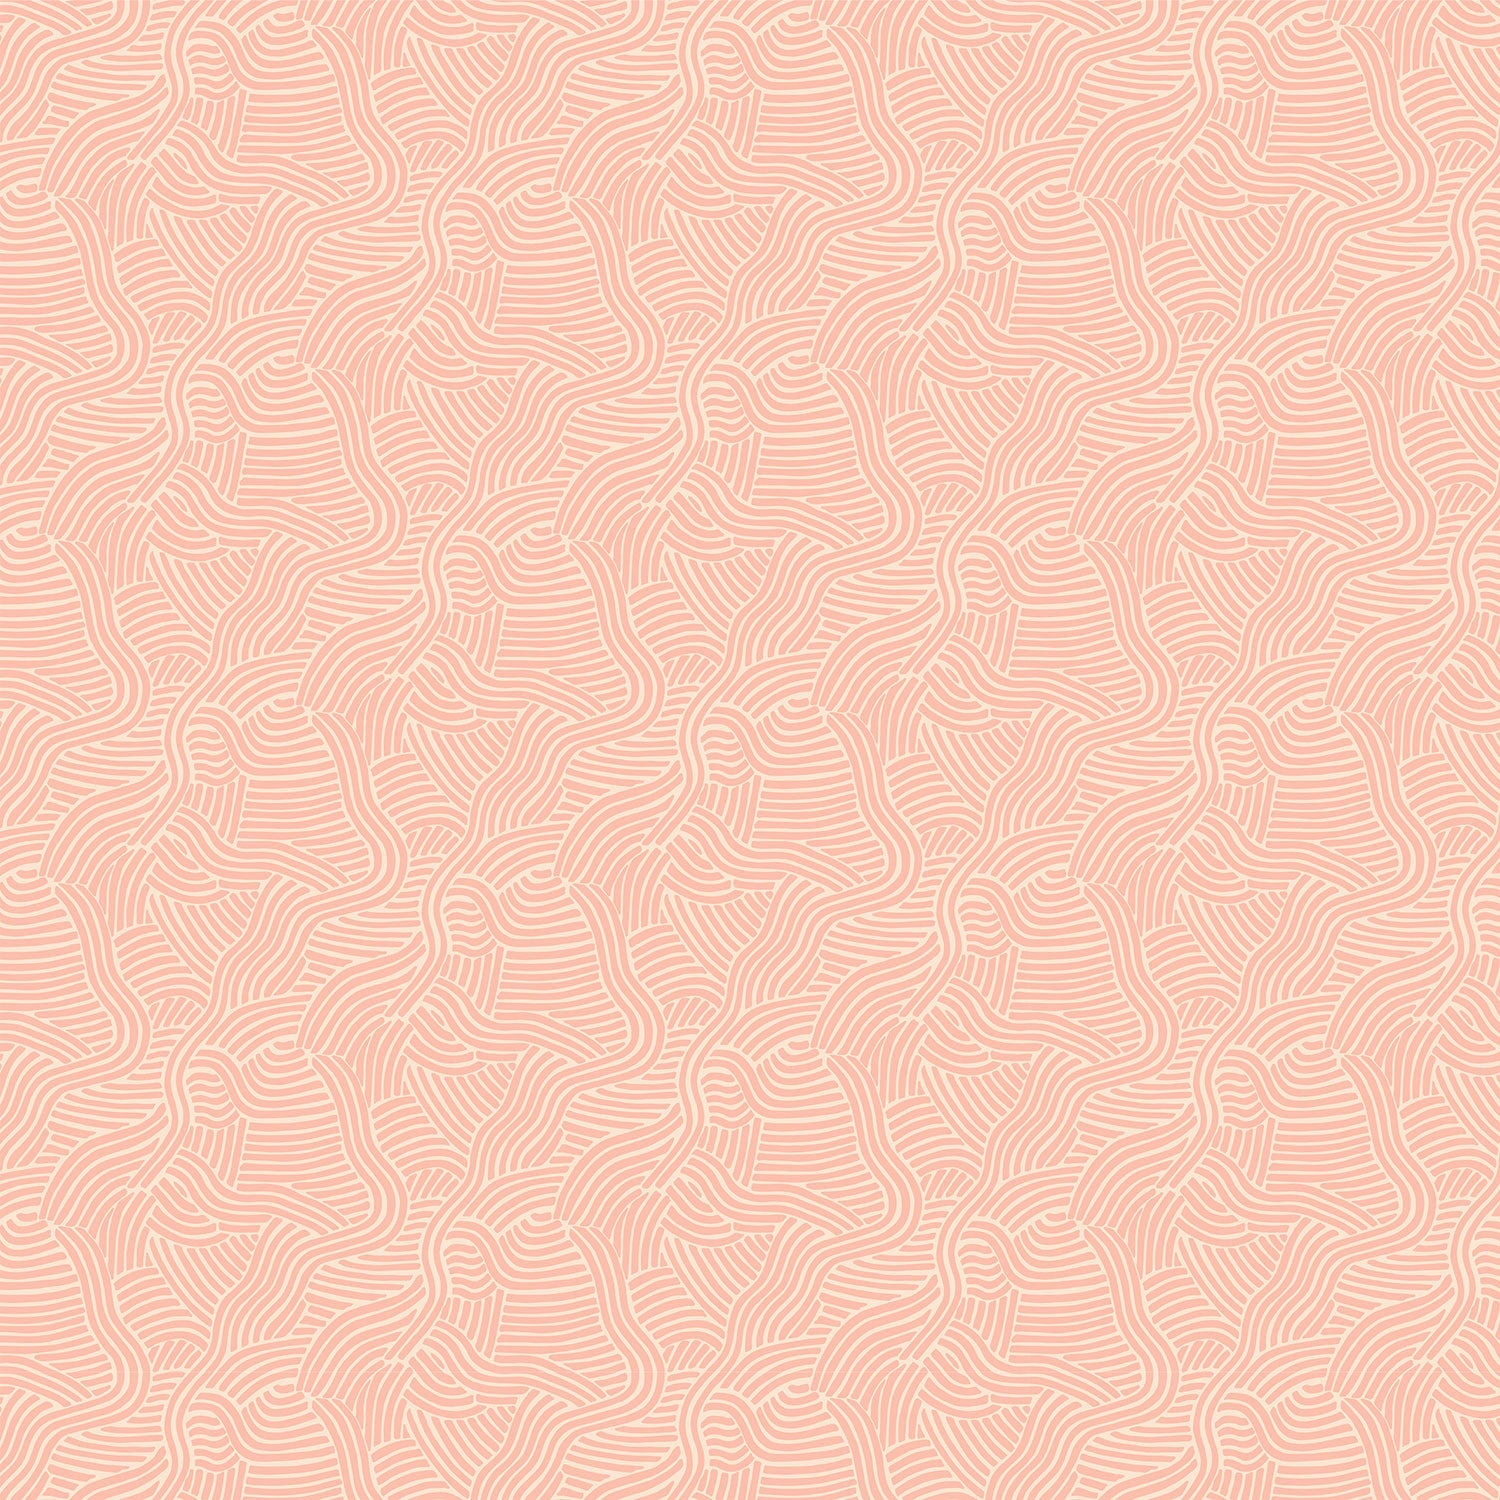 Luxury pink wallpaper with an abstract wave design